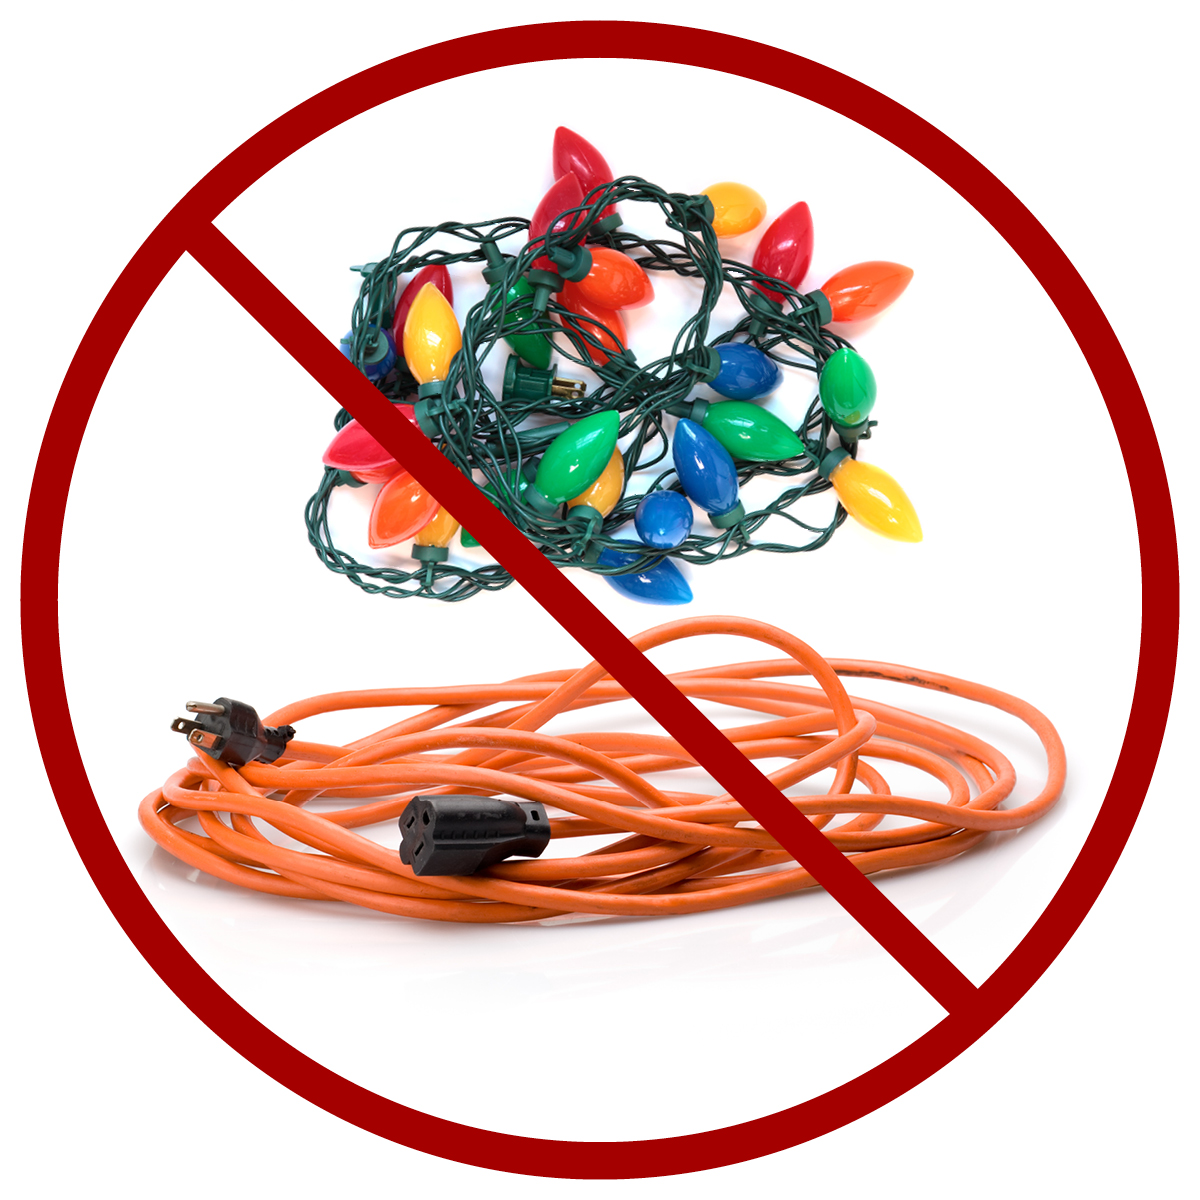 string of lights and extension cord: keep out of clue recycling cart